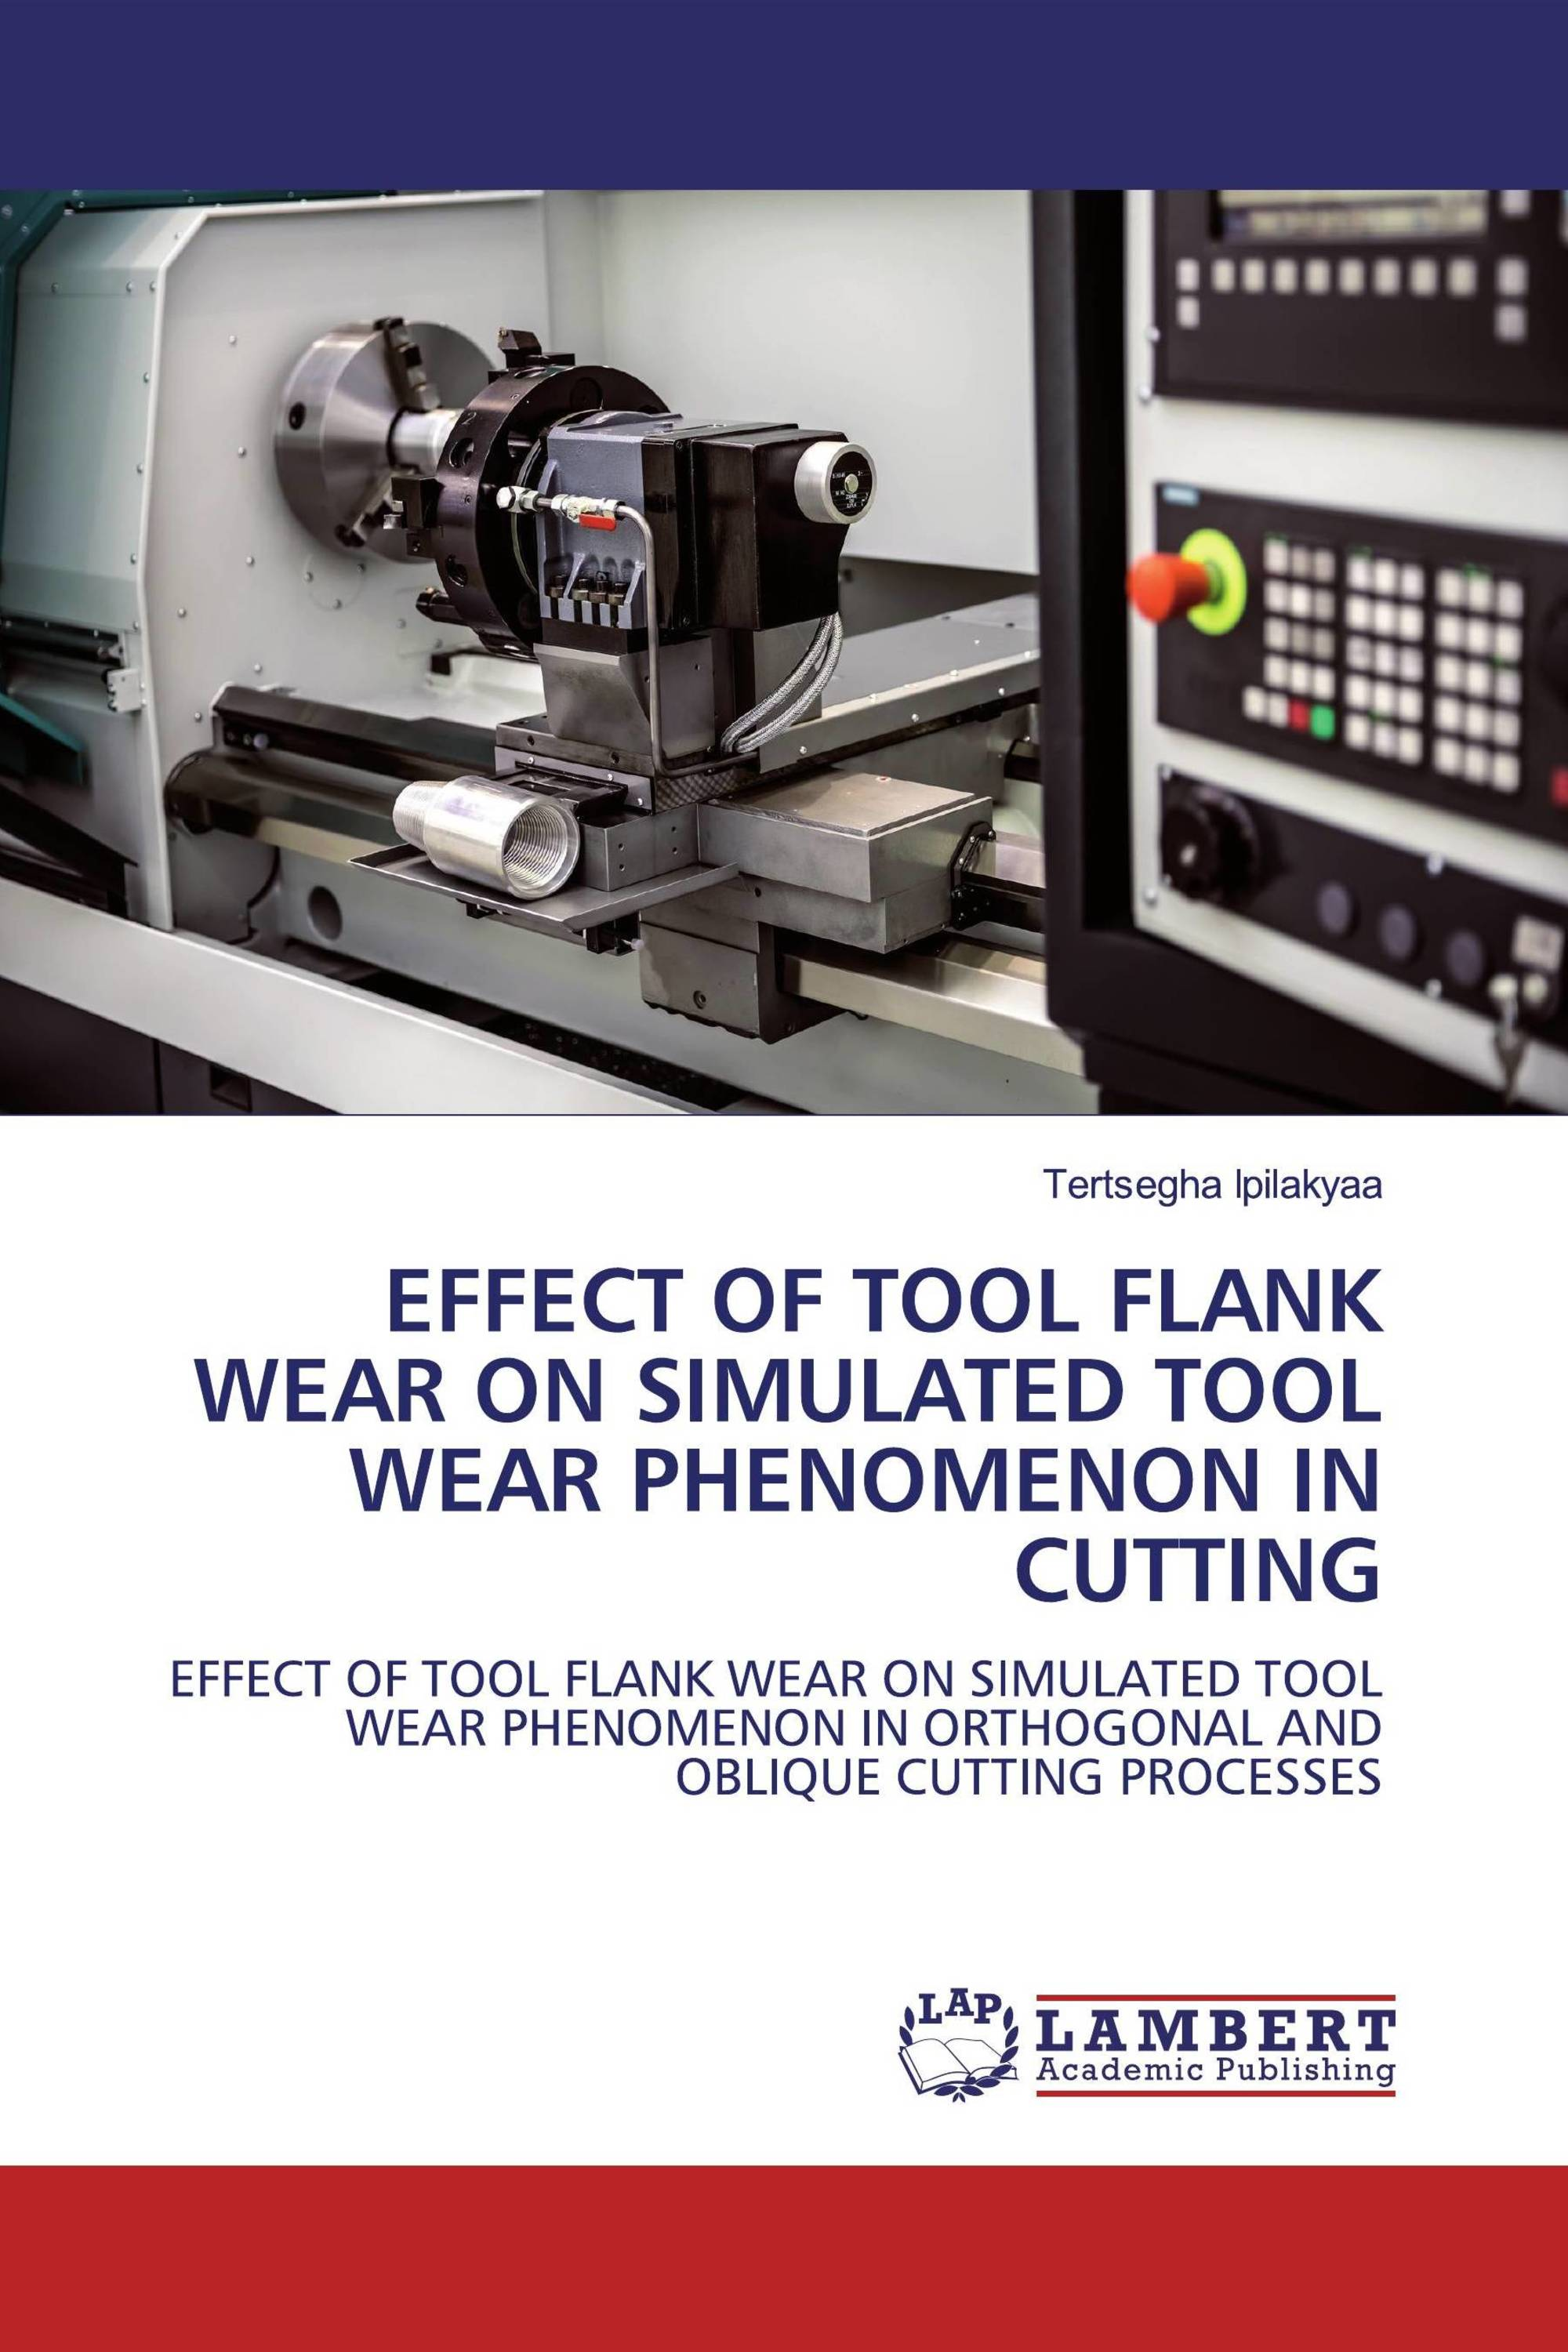 EFFECT OF TOOL FLANK WEAR ON SIMULATED TOOL WEAR PHENOMENON IN CUTTING